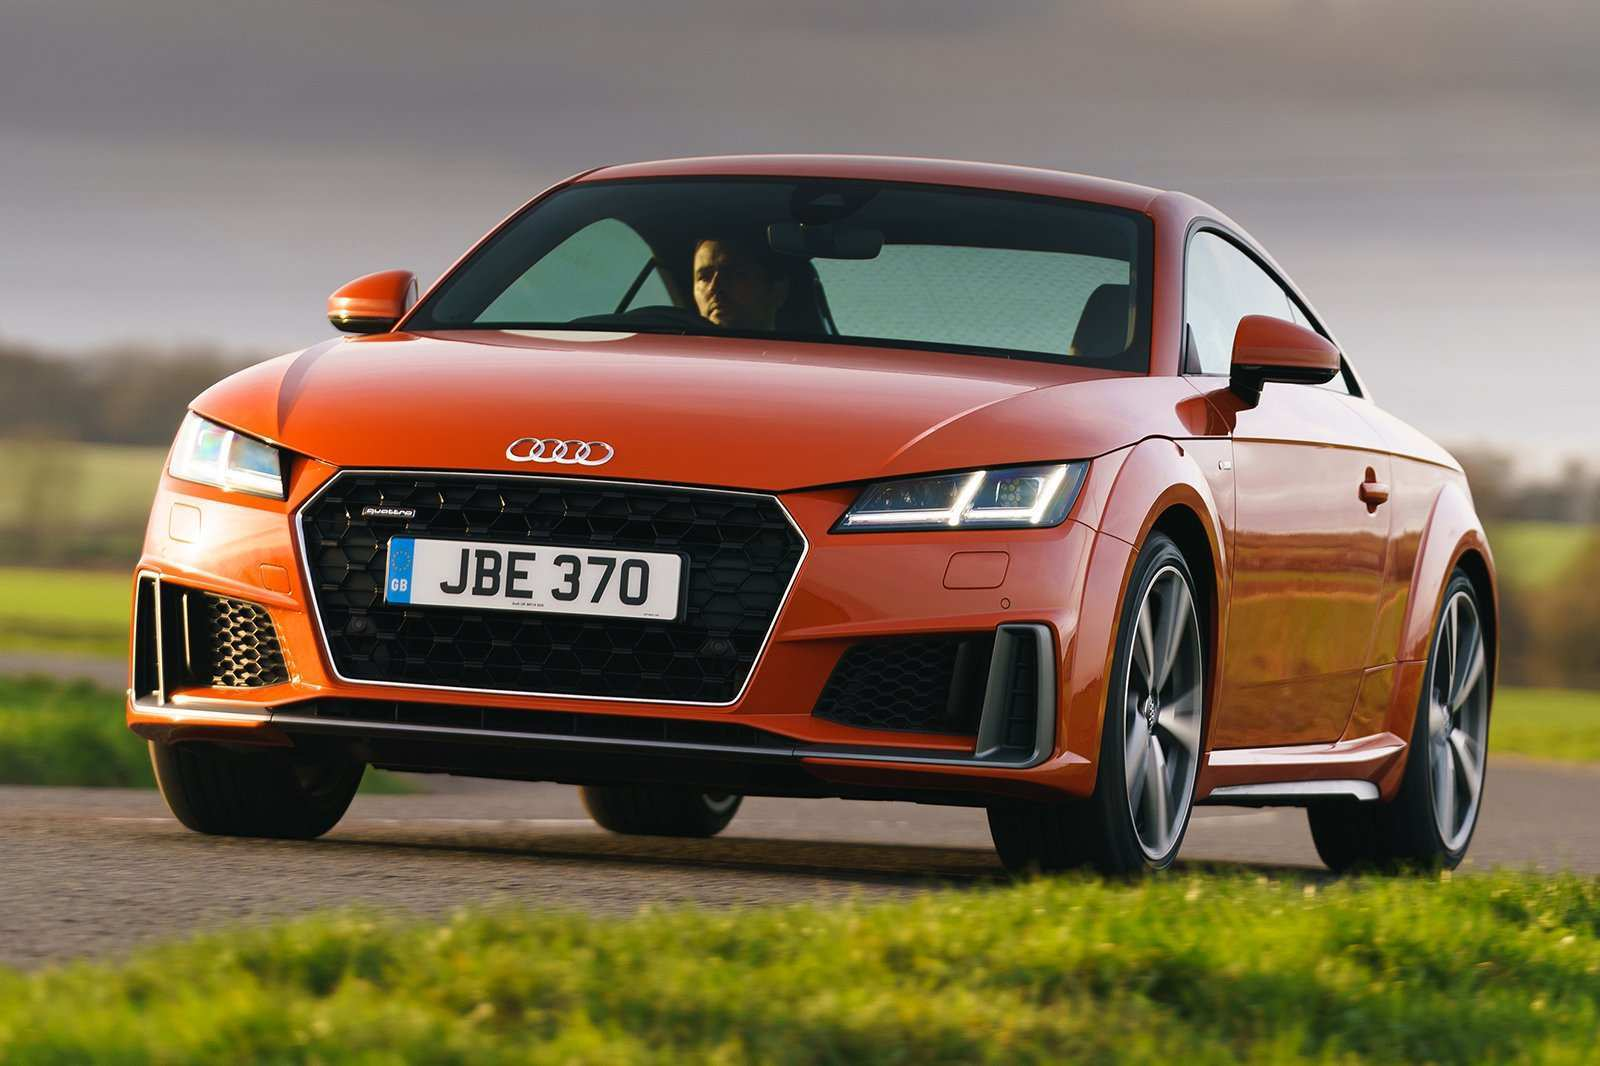 87 Gallery of 2019 Audi Tt Specs Price and Review by 2019 Audi Tt Specs